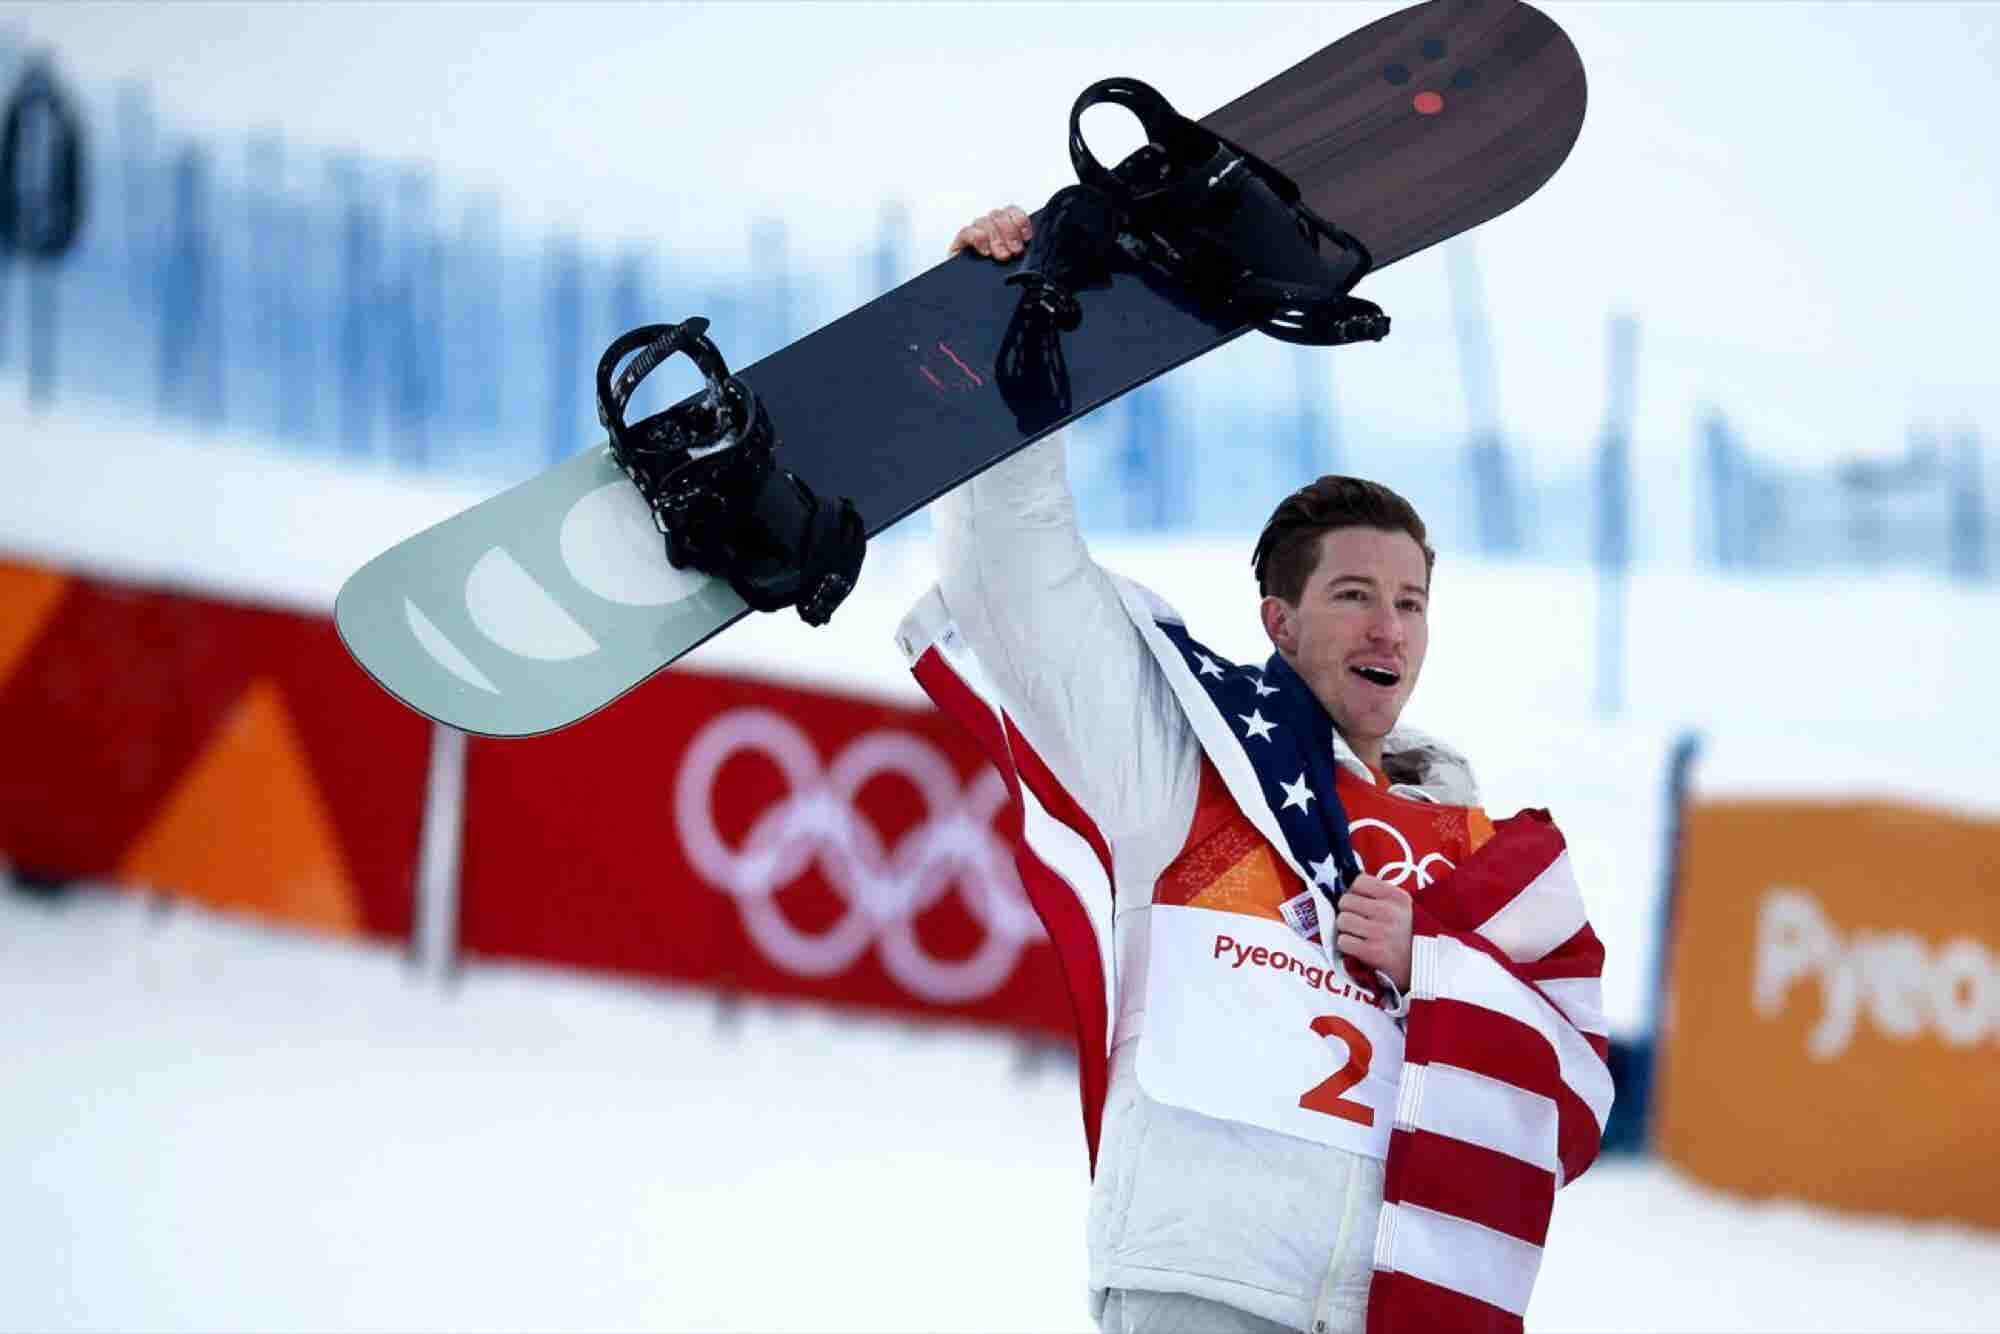 3 Lessons You Can Learn About Business from the World's Greatest Snowb...